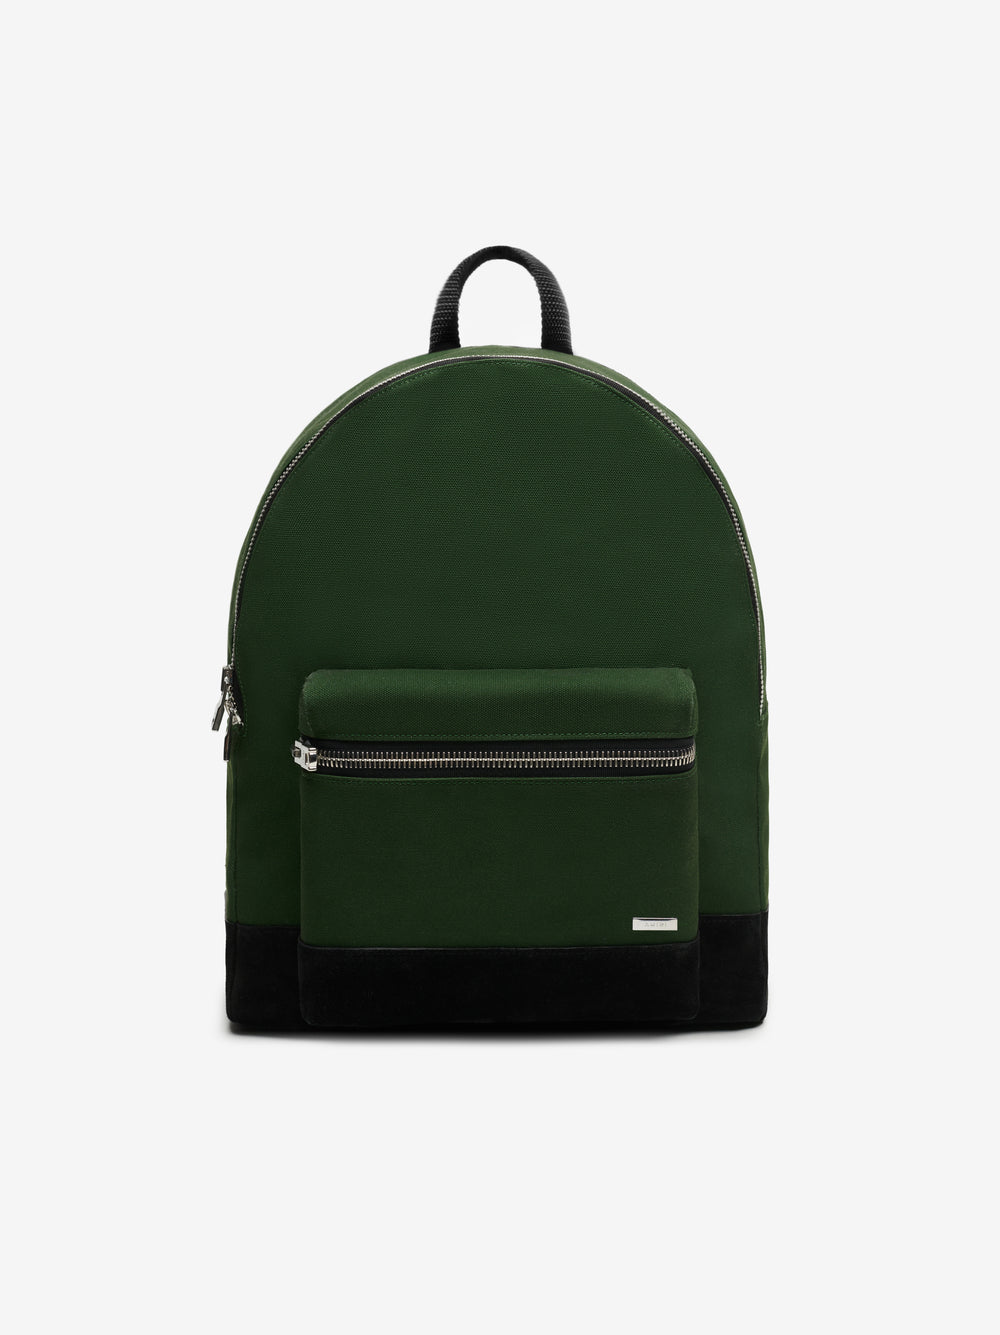 CLASSIC CANVAS / SUEDE BACKPACK - MILITARY GREEN / BLACK